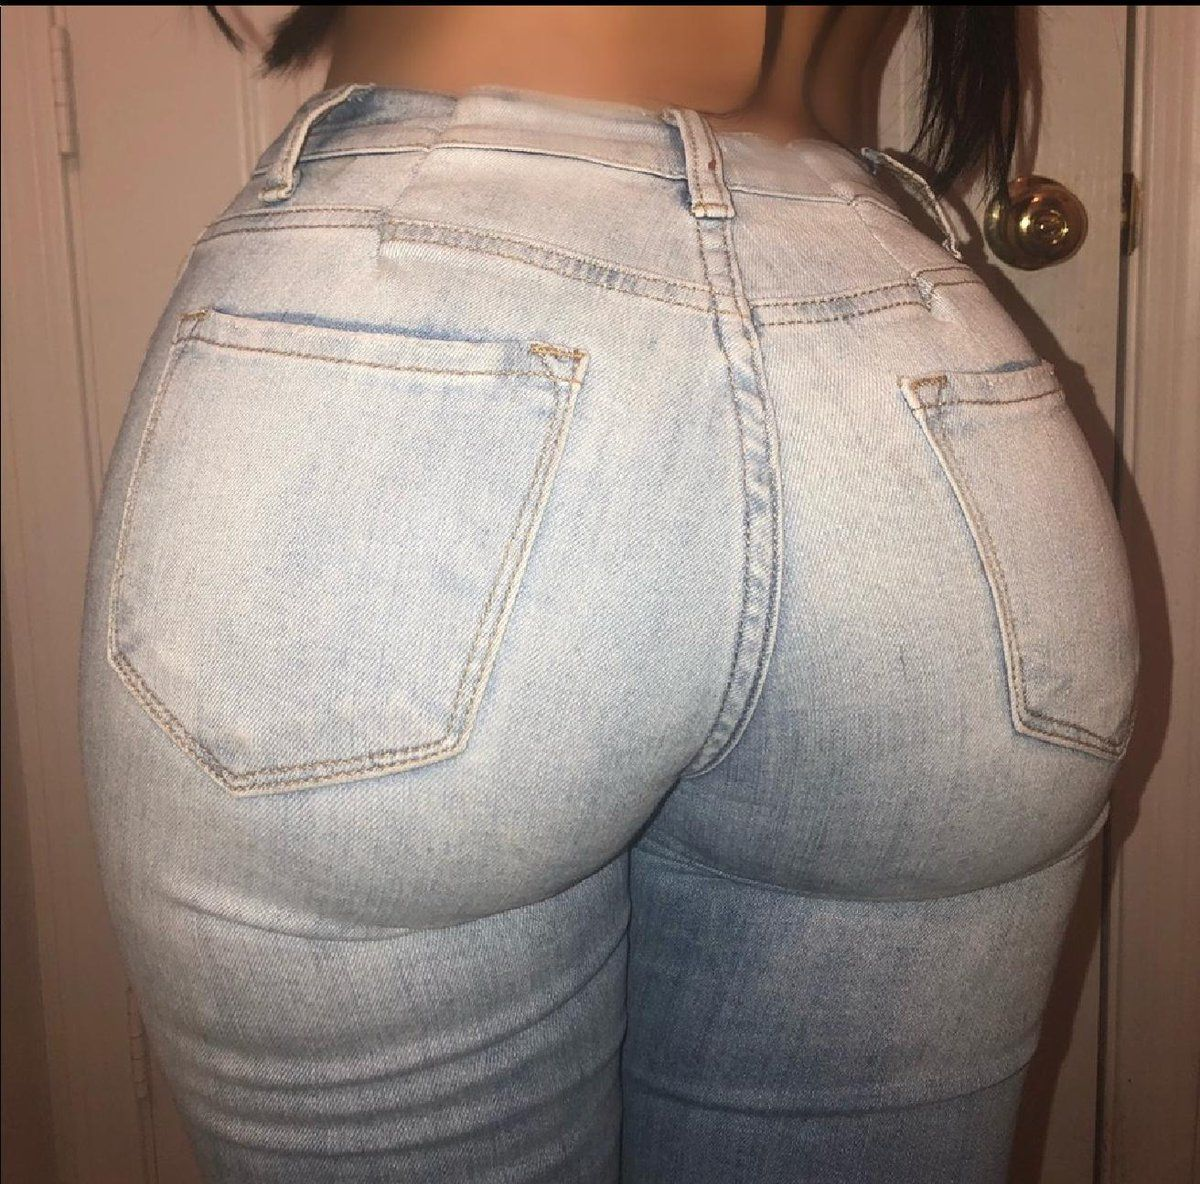 Ass Parade Images pin on women's fashion